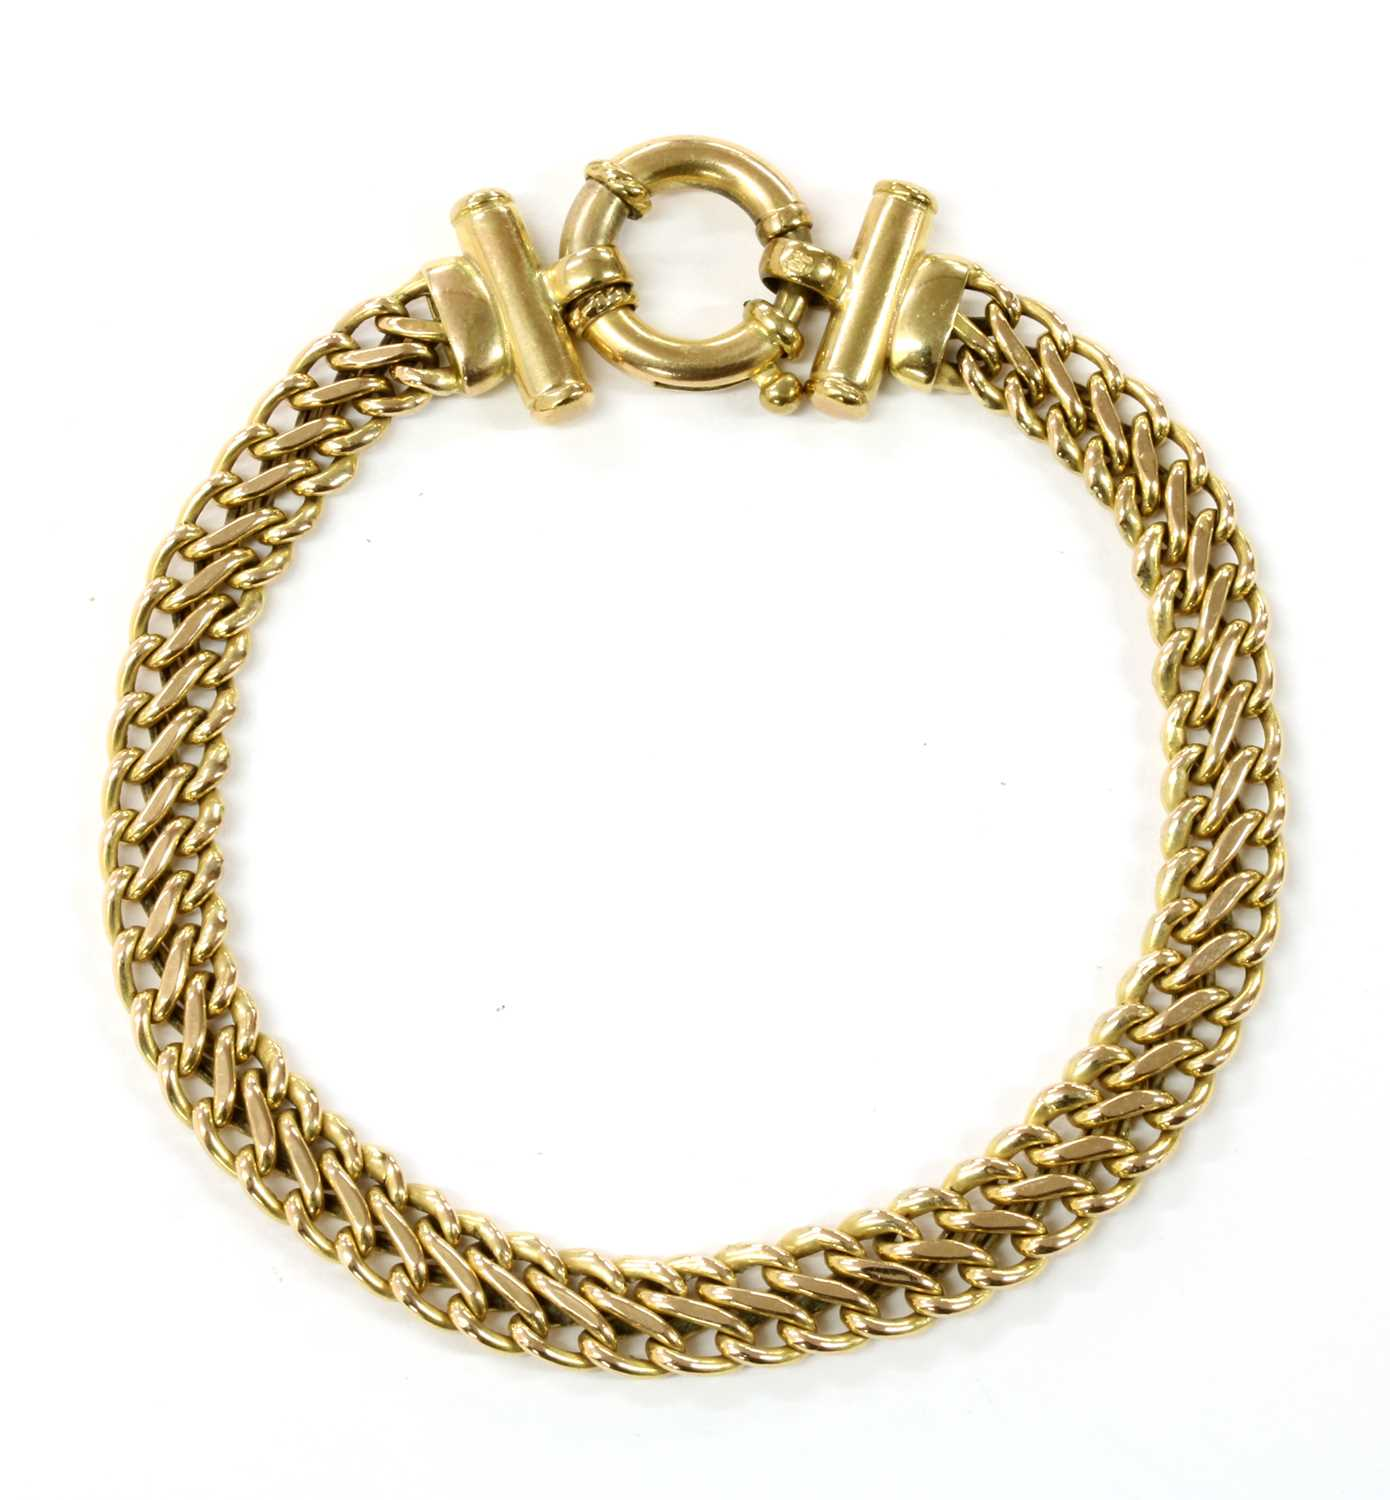 Lot 69 - A 9ct gold hollow figure of eight link bracelet